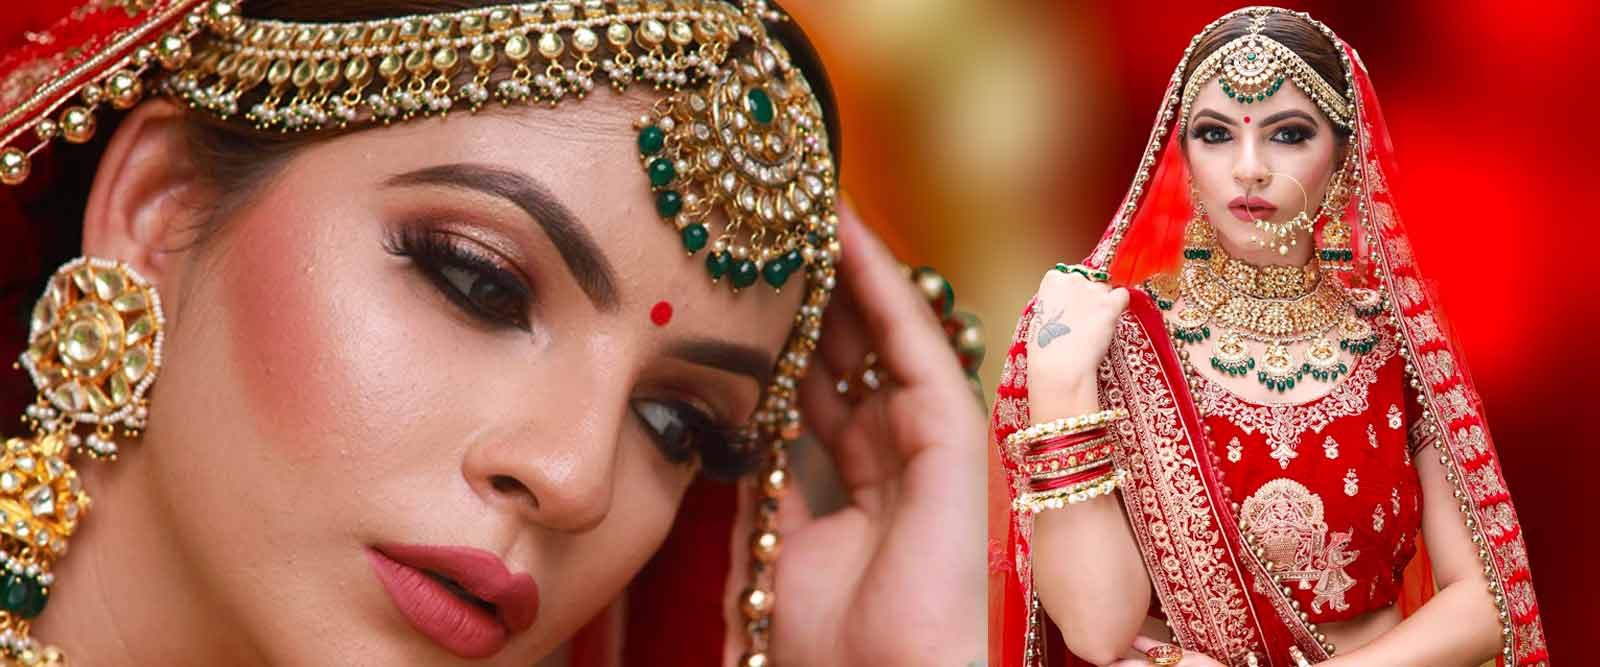 Wedding Makeup Artist in Keshav Puram